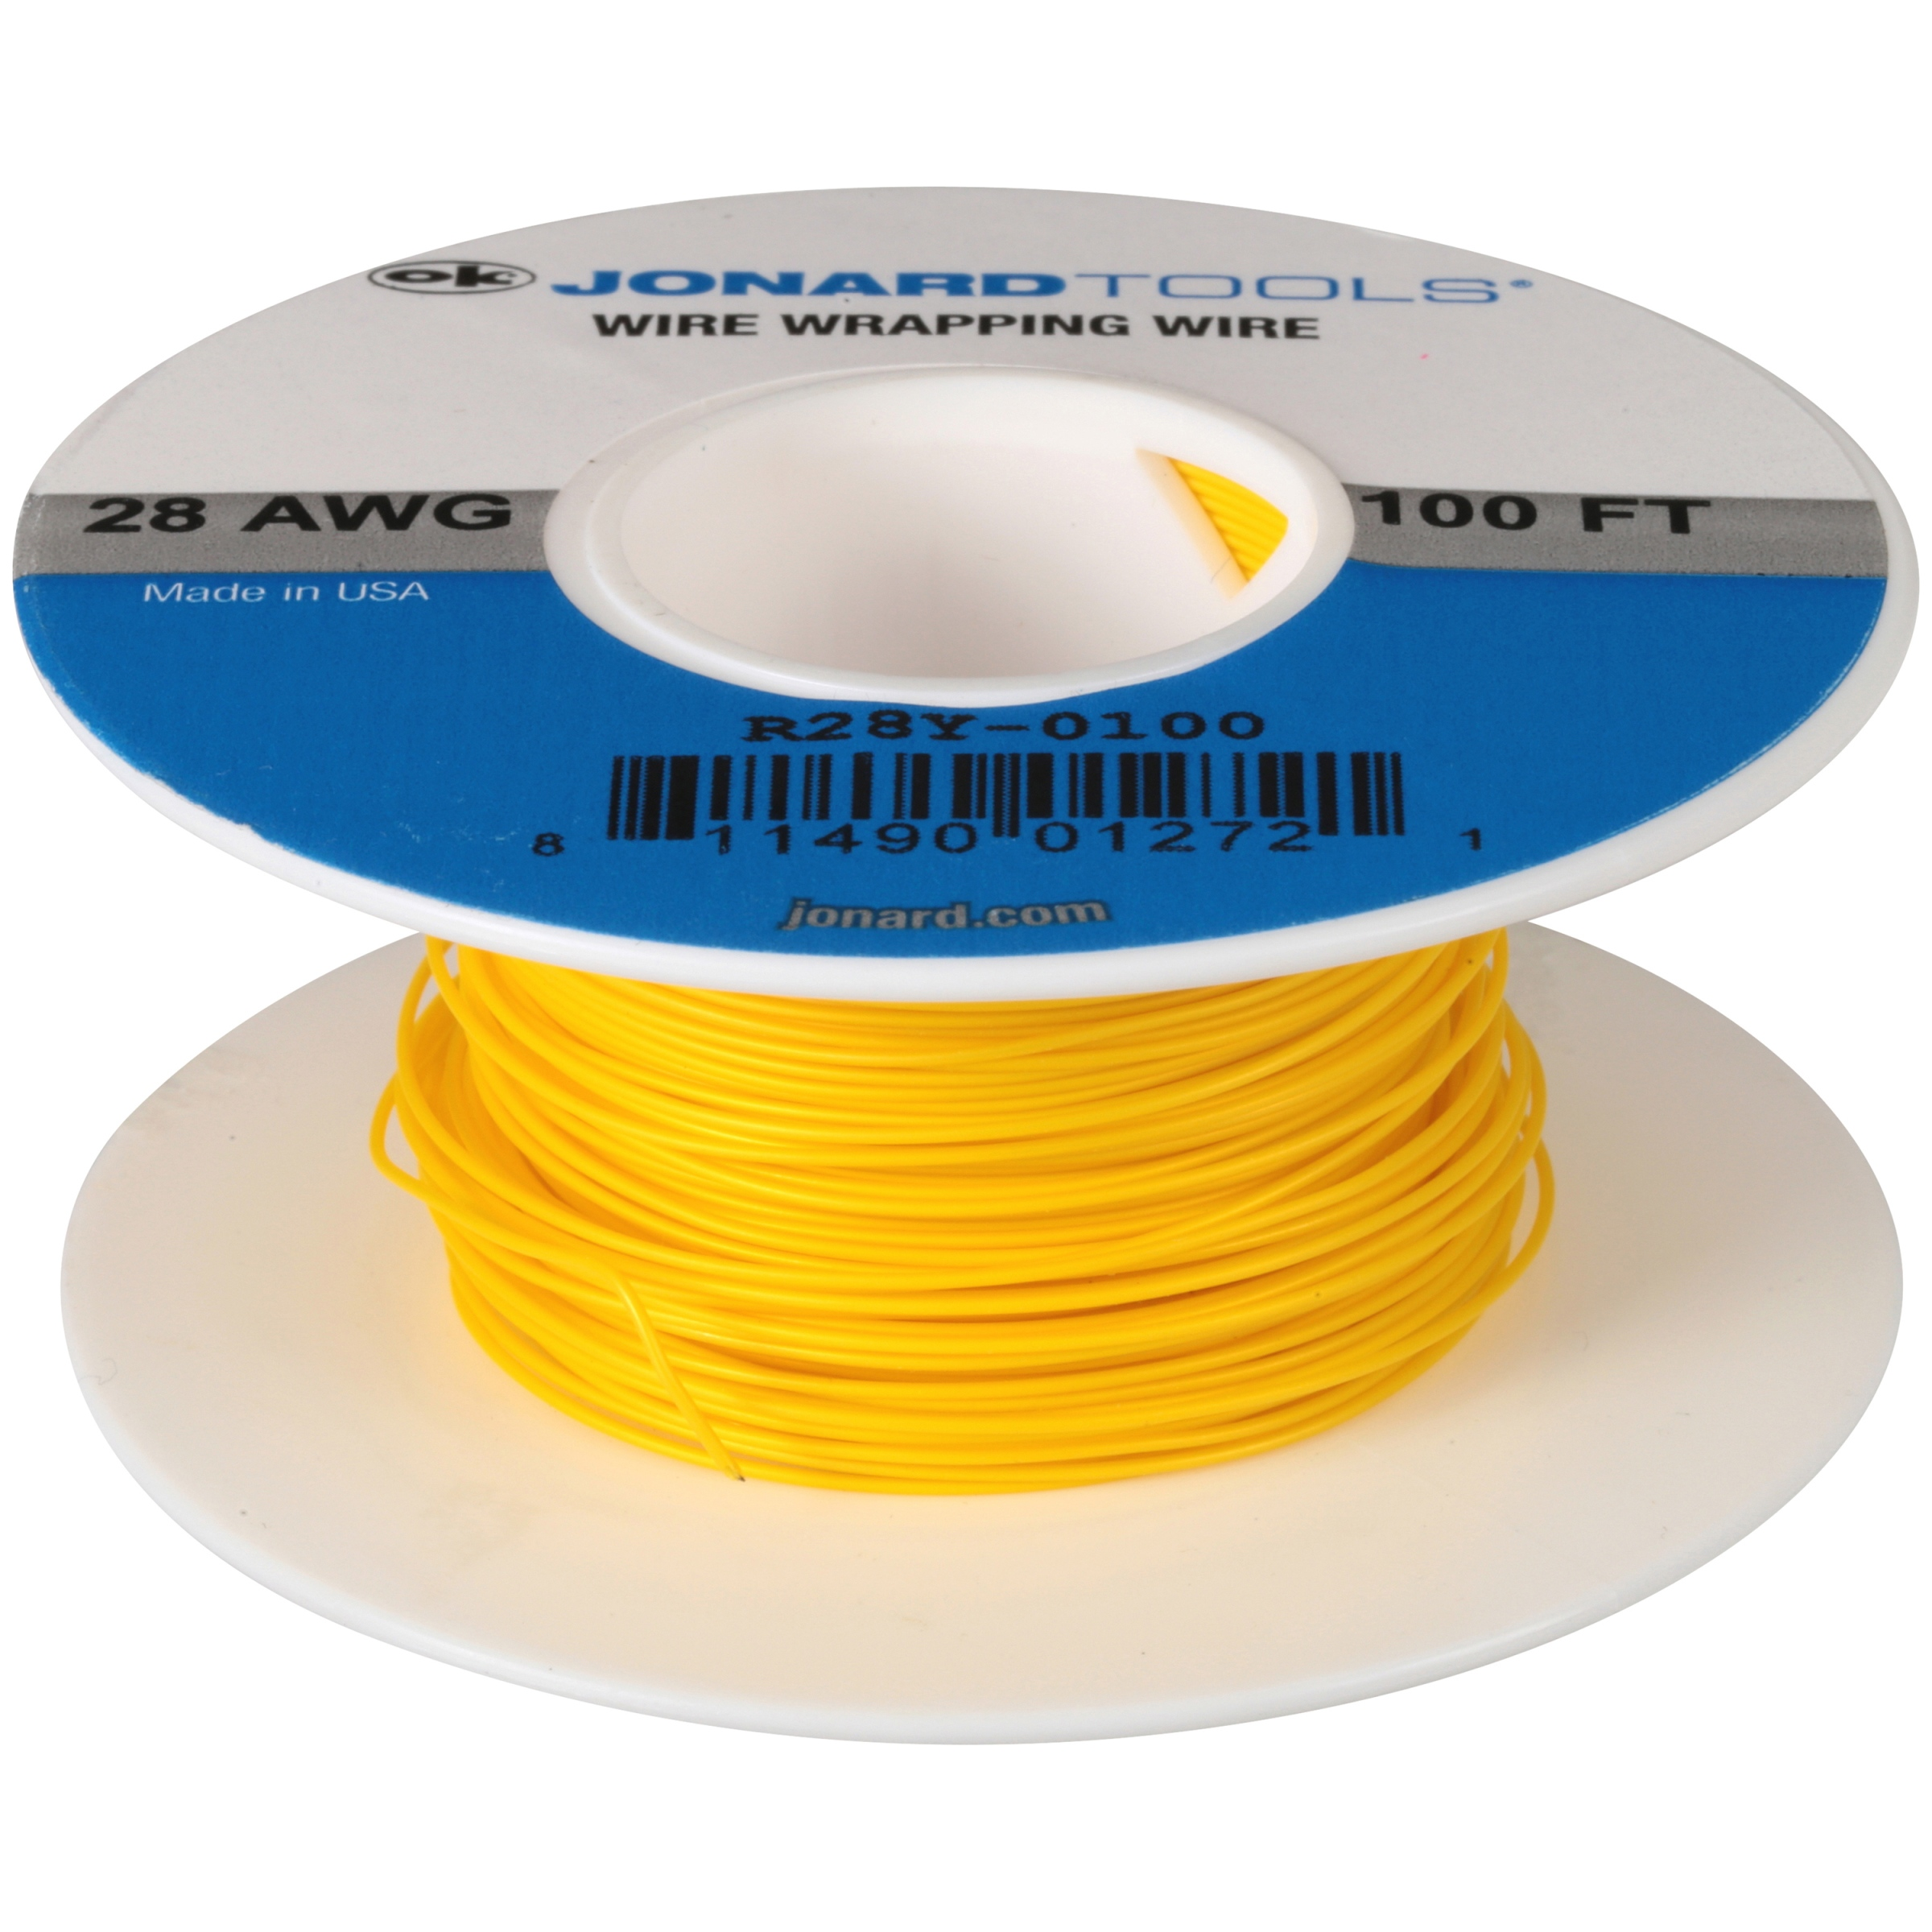 Jonard Tools® 28 AWG Wire Wrapping Wire 100 ft Pack